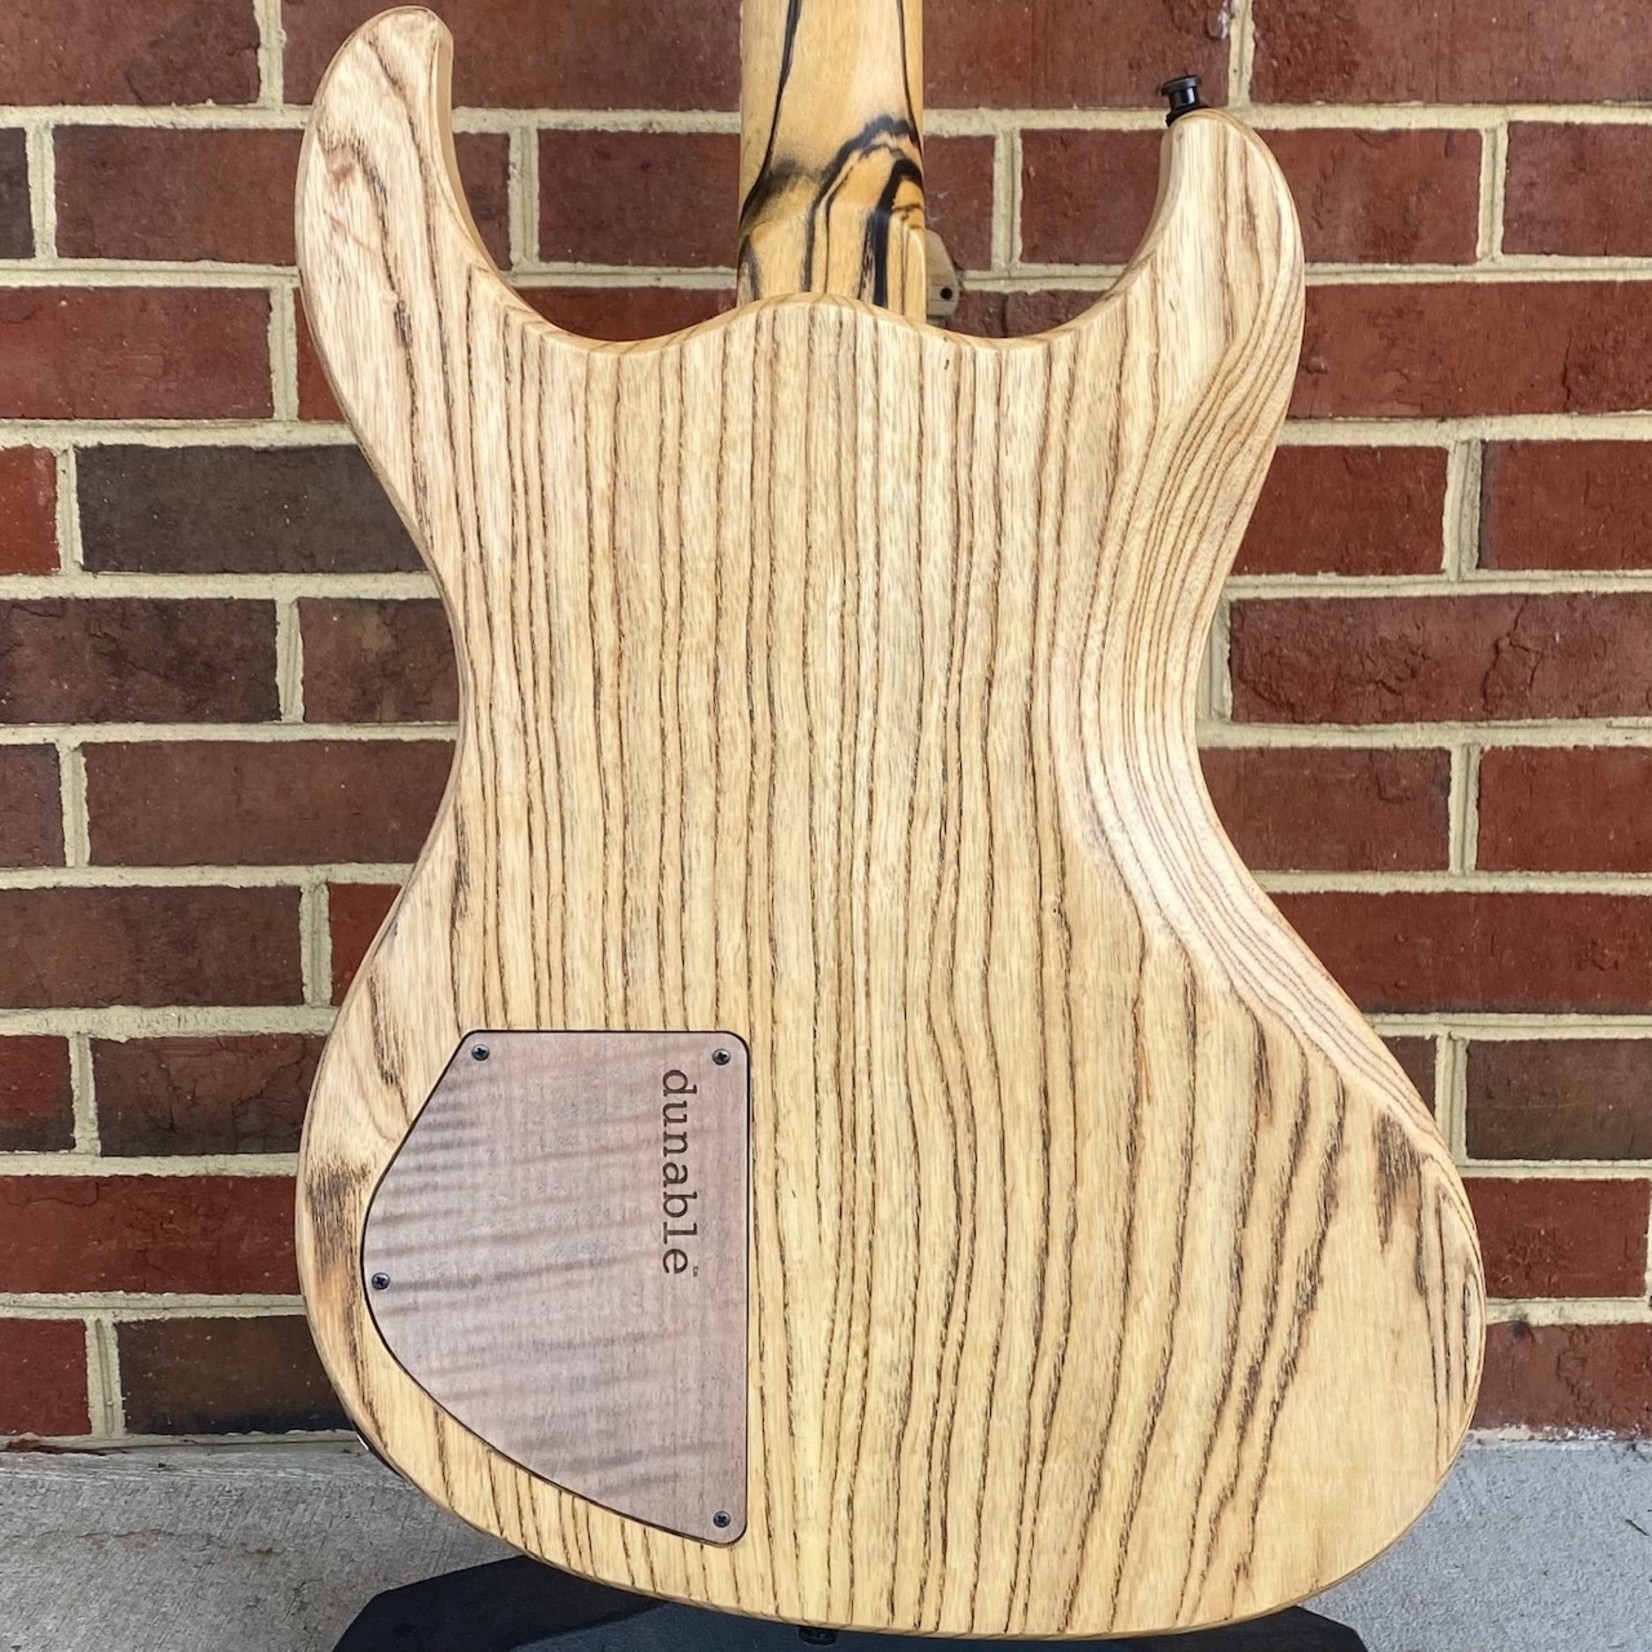 Dunable Guitars Dunable Guitars USA Special Stash #1 - Gnarwhal, One Piece Buckeye Burl Top w/ Gold Sparkle Resin Fill, Swamp Ash Body, Pale Moon Ebony Neck, Pale Moon Ebony Fretboard, Hardshell Case